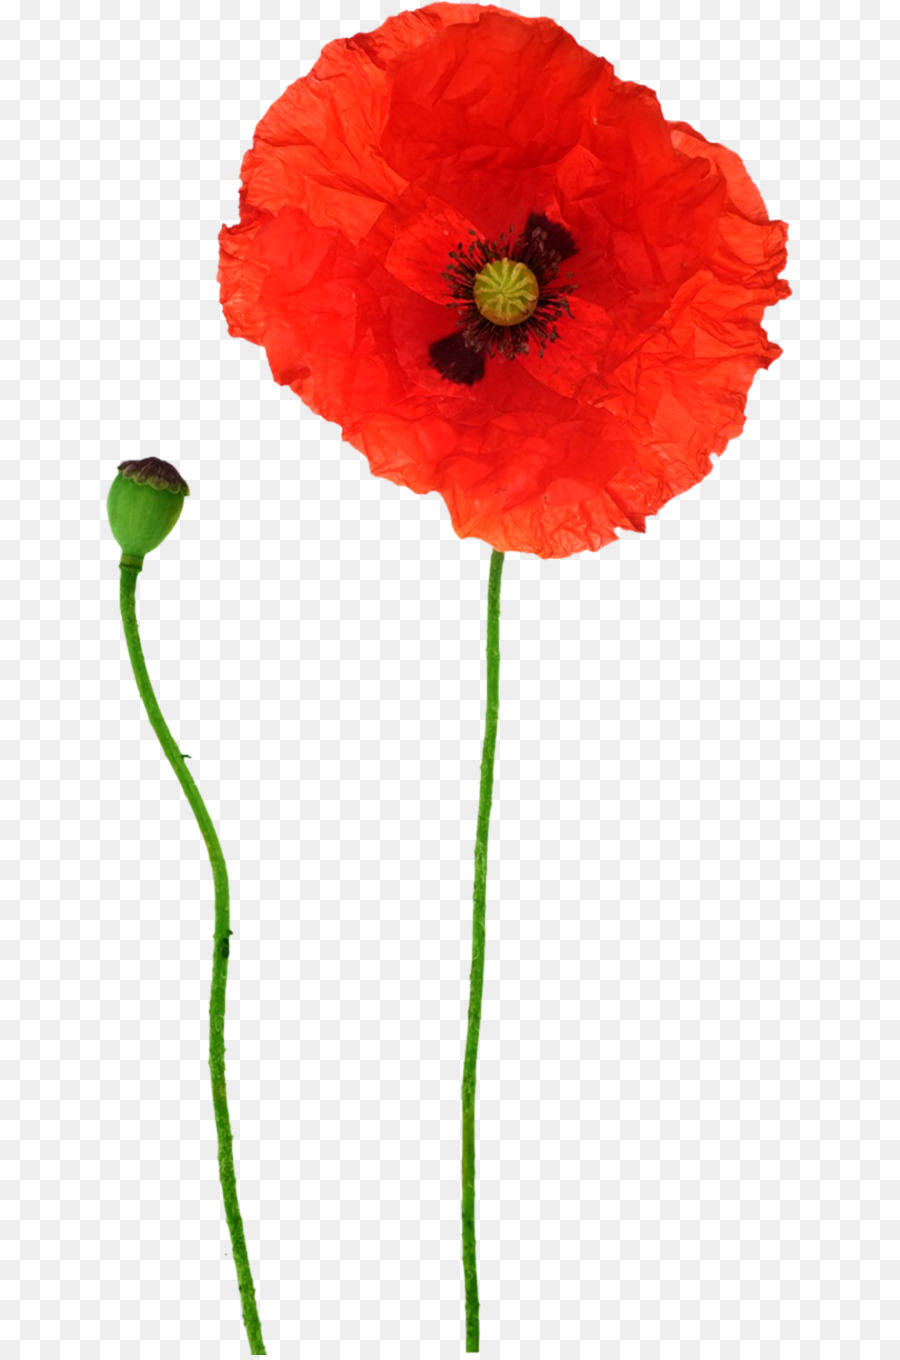 Opium poppy flower red poppy png download 6891355 free opium poppy flower red poppy mightylinksfo